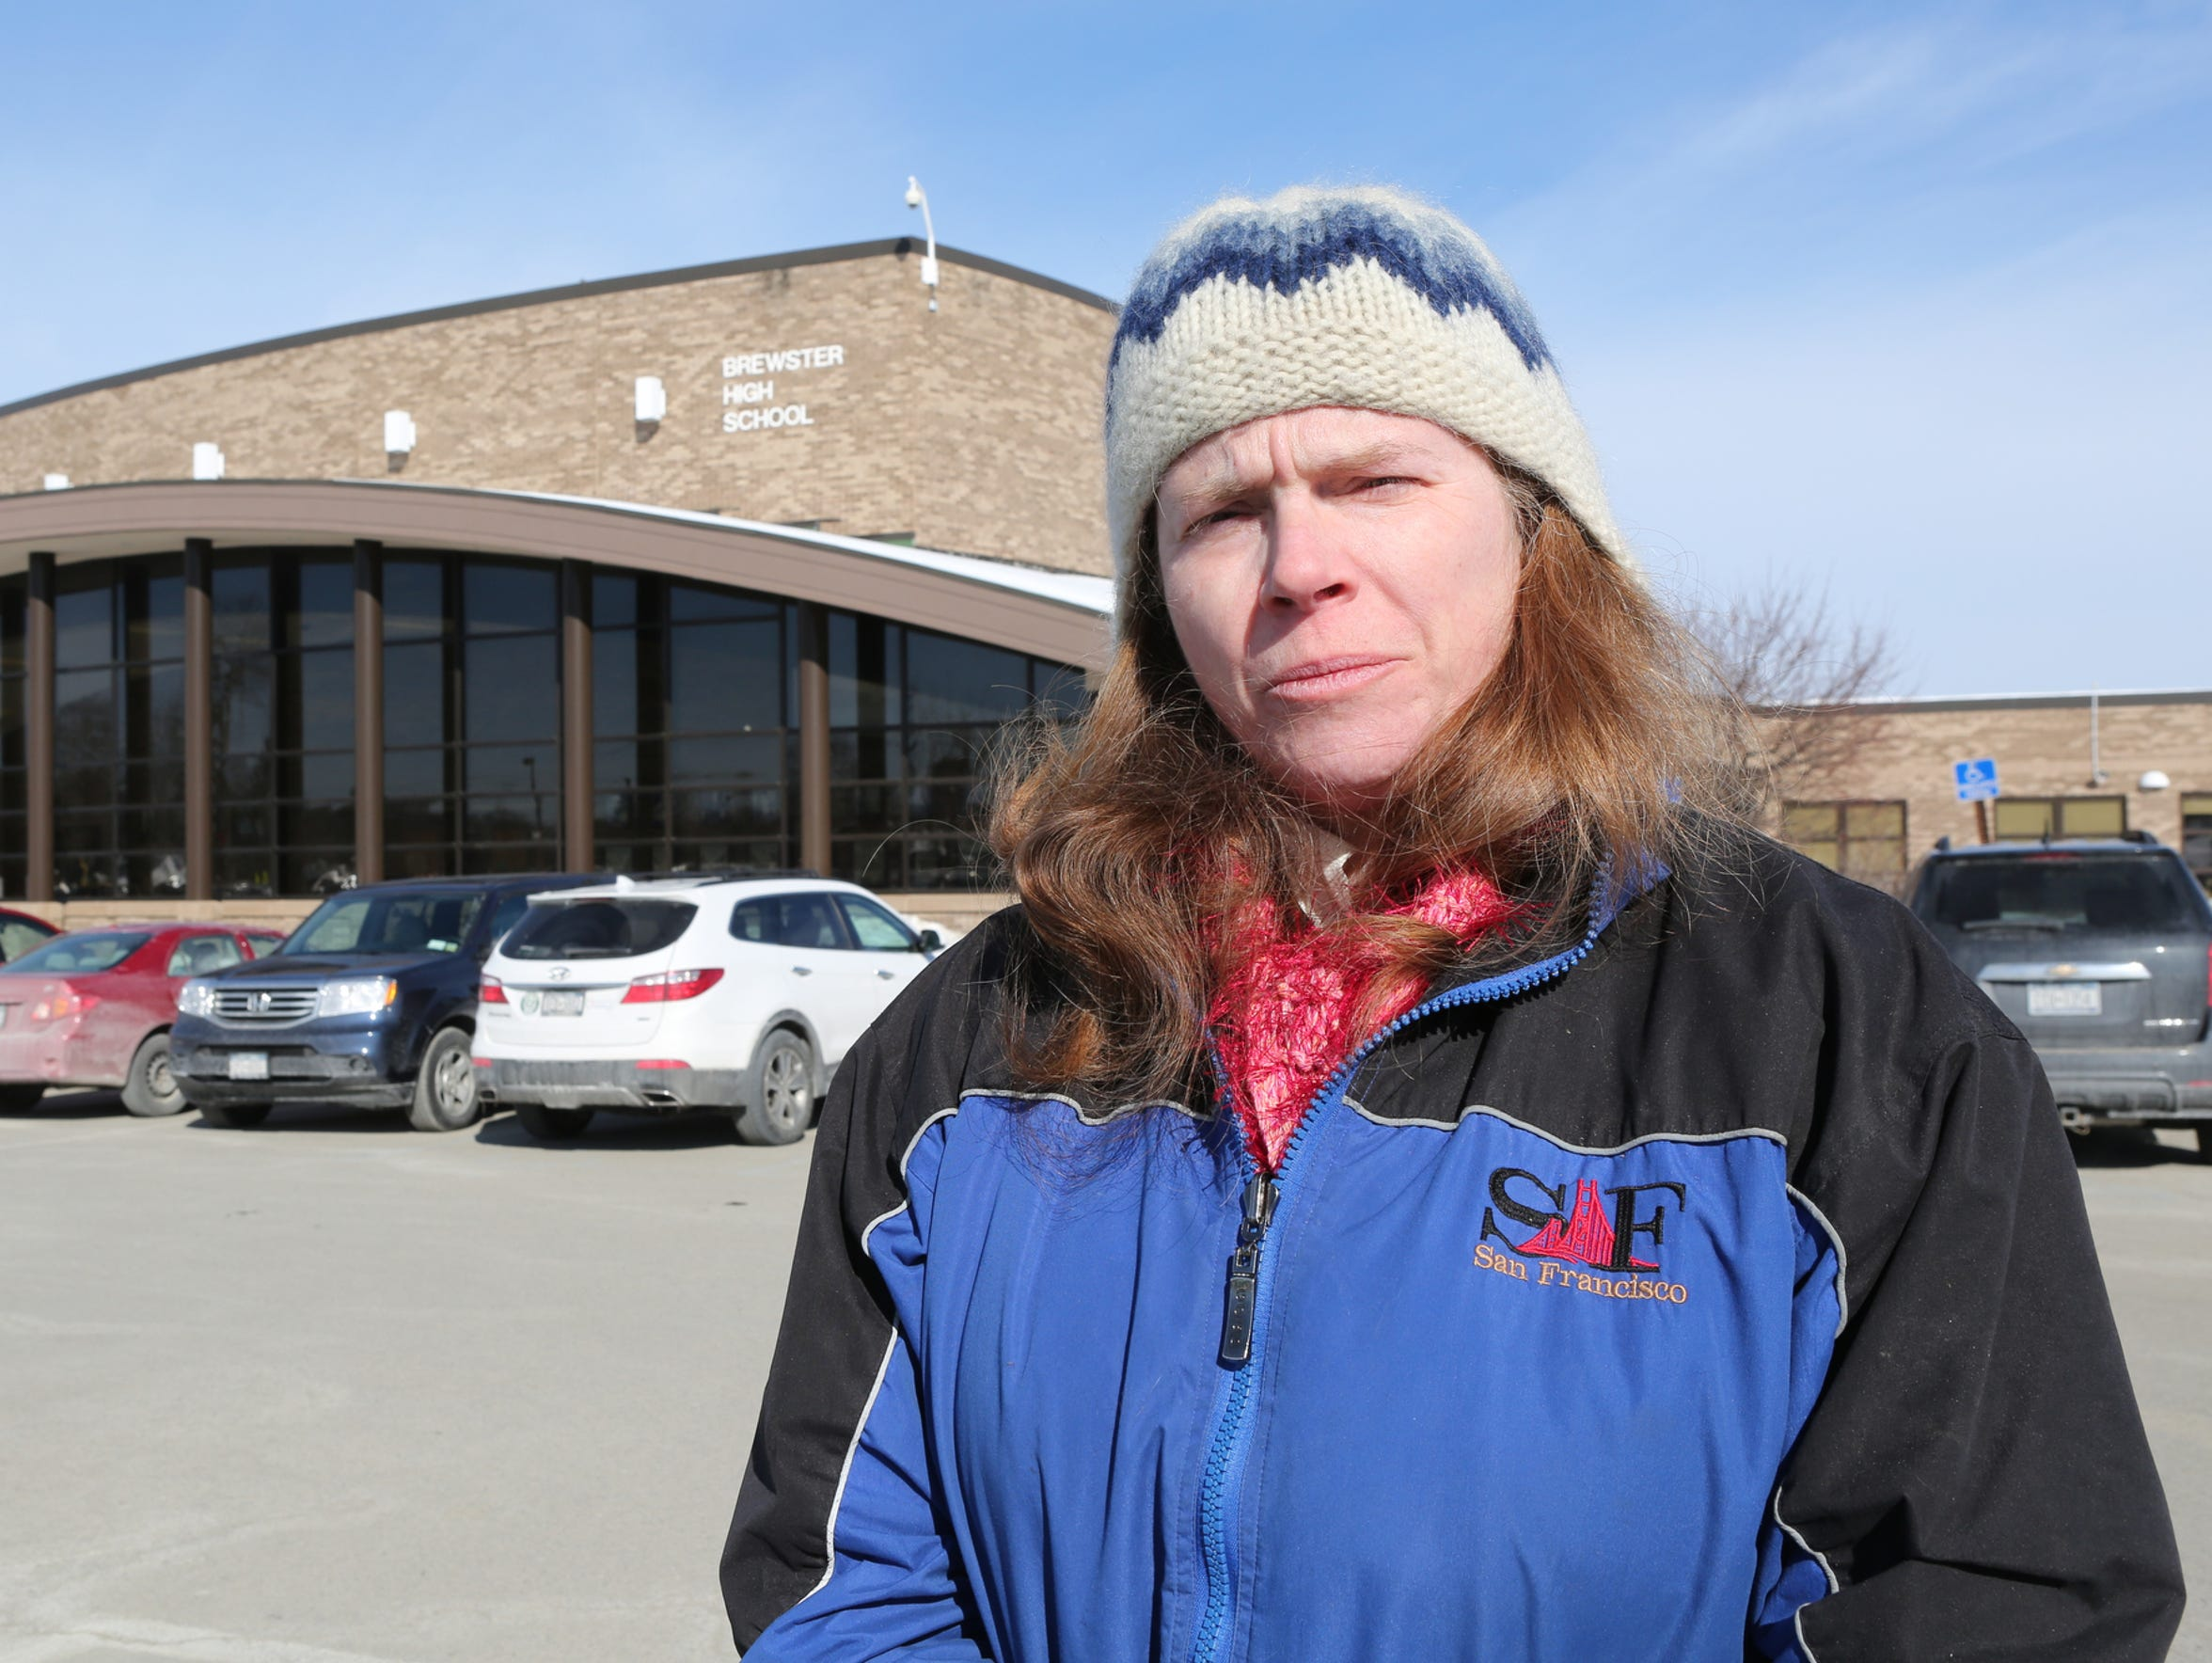 Christine Zirkelbach is a parent in the Brewster school